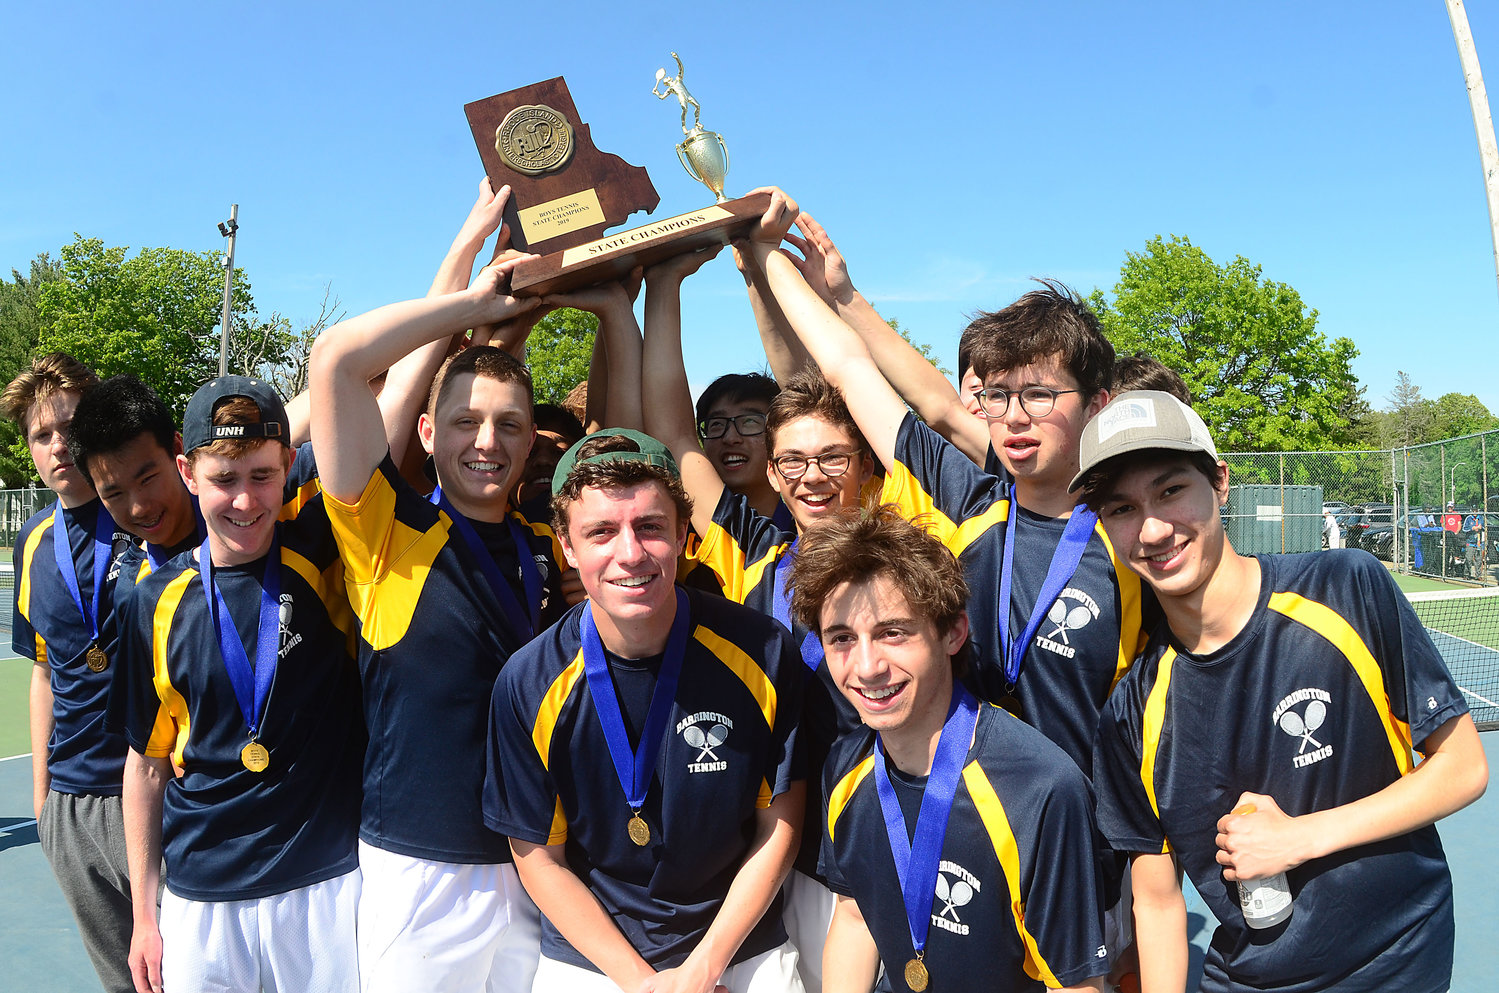 Members of the Barrington High School boys tennis team celebrate an undefeated season and state championship following their finals win over Wheeler on Saturday.